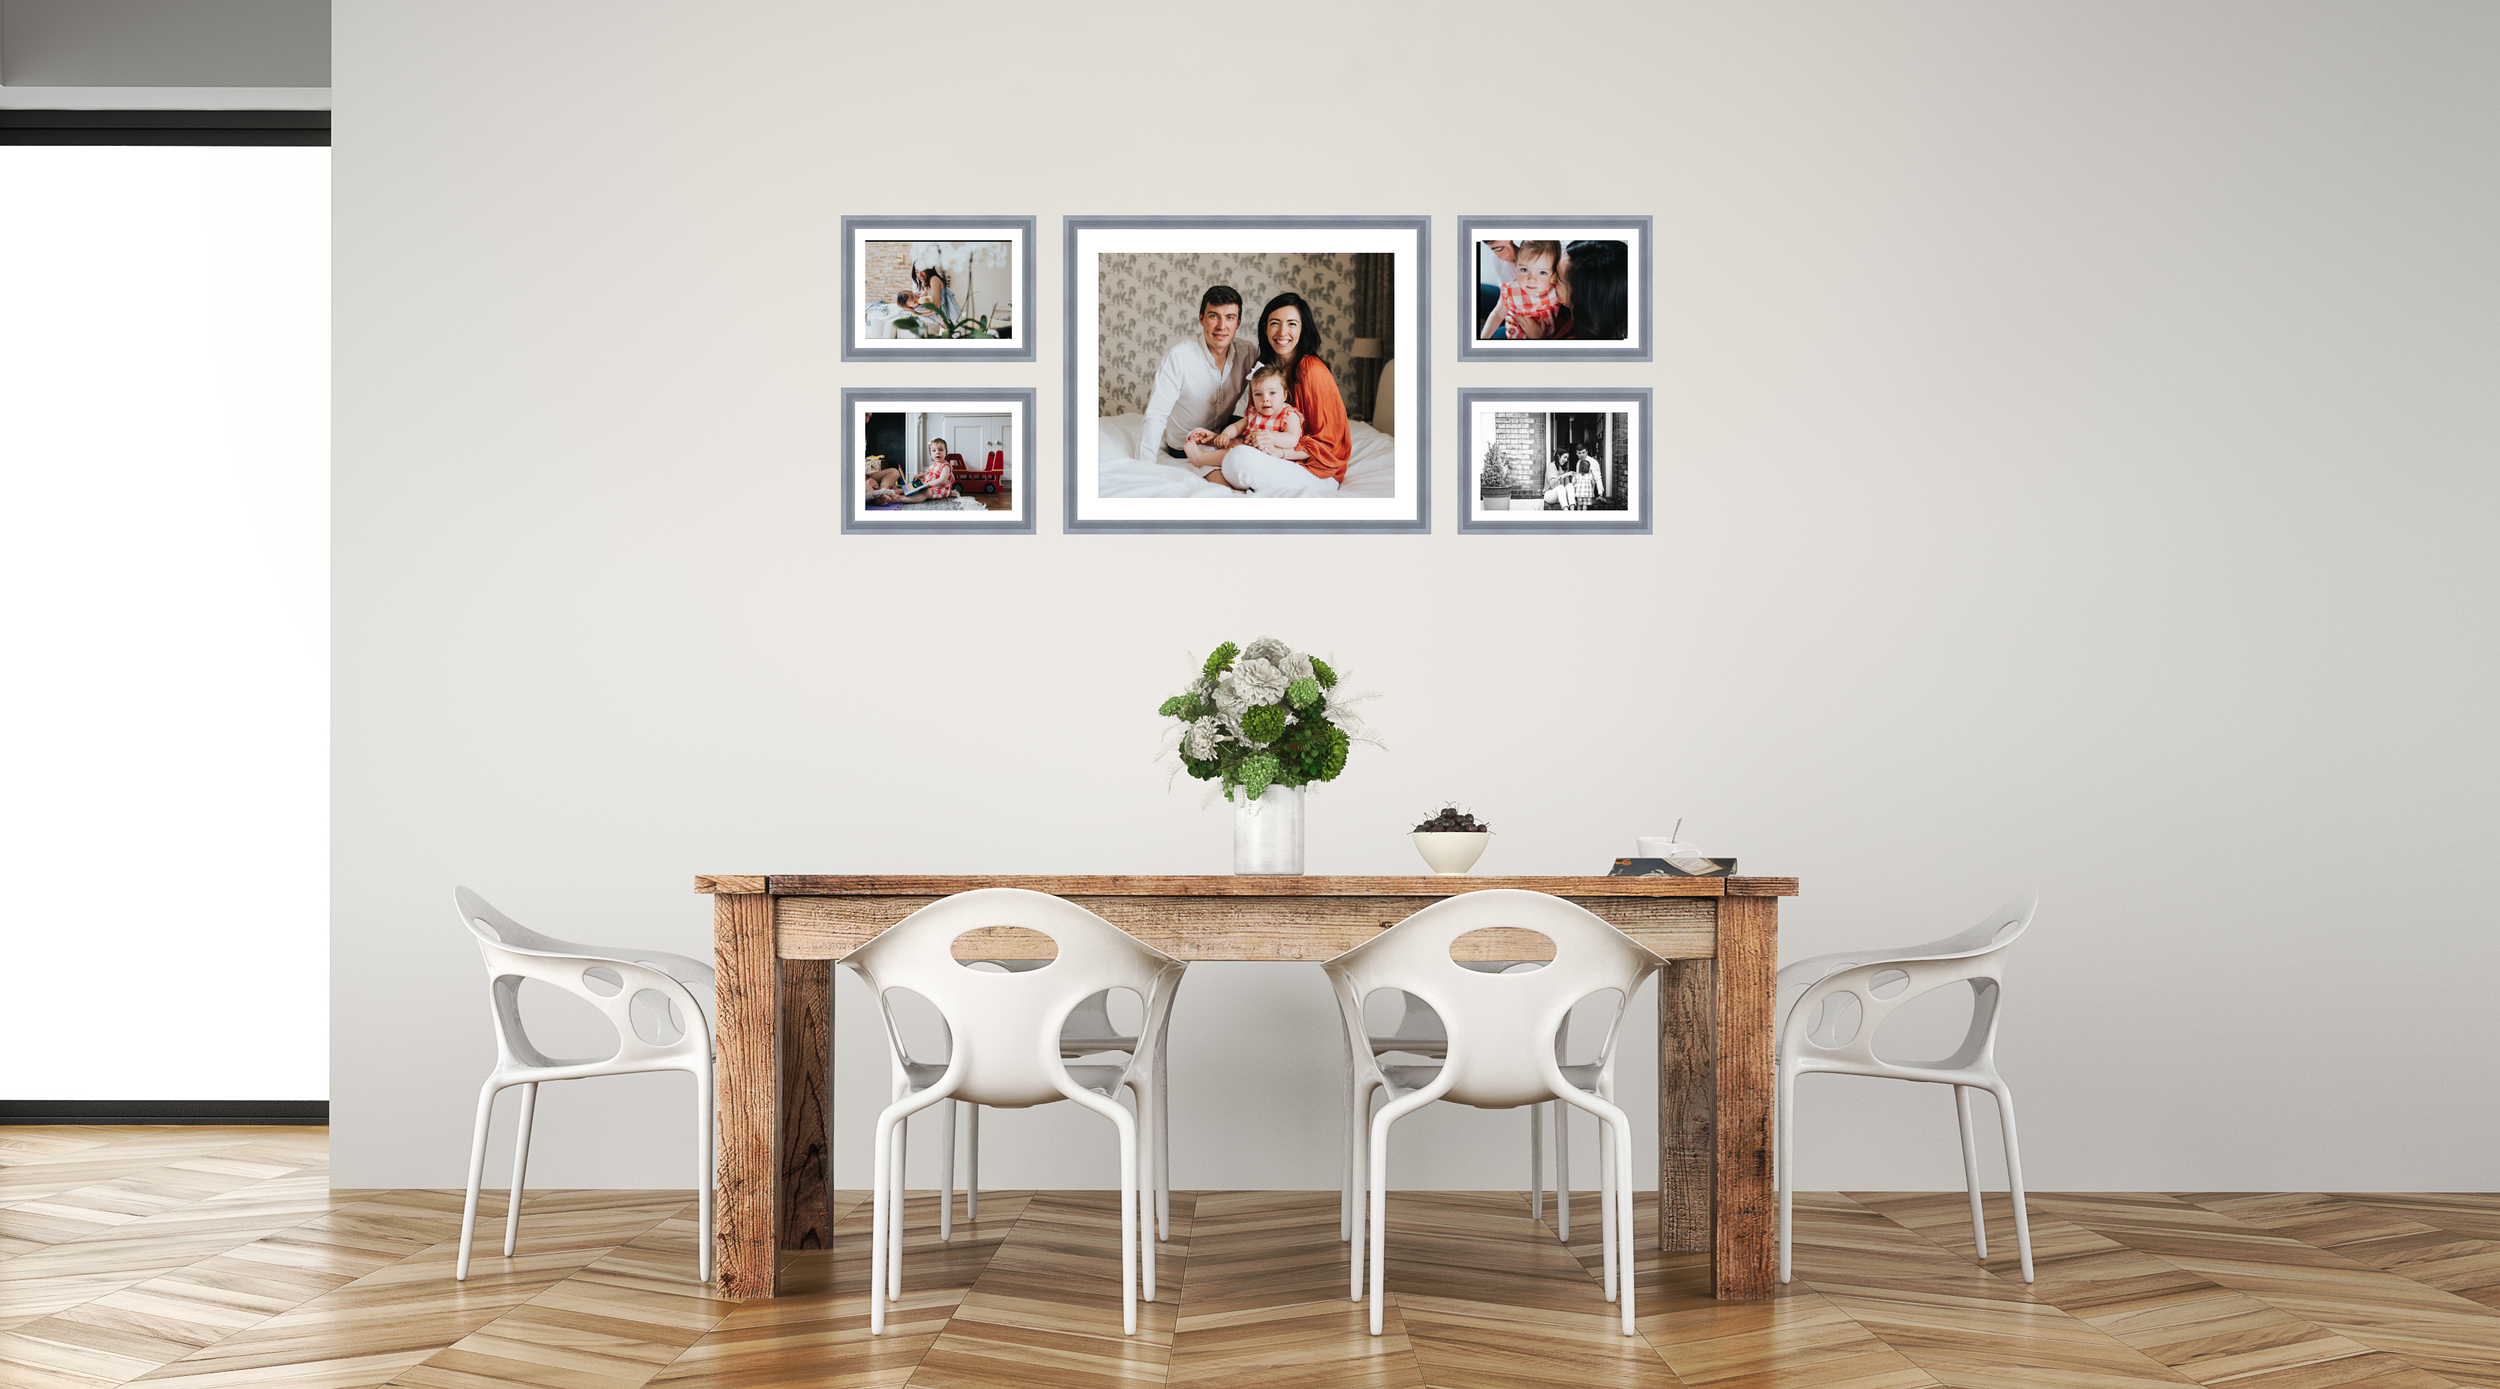 """WALL COLLECTION 3 - £690 - 1x 24×20"""", 4x 12×8""""Total Size: 66×26″"""